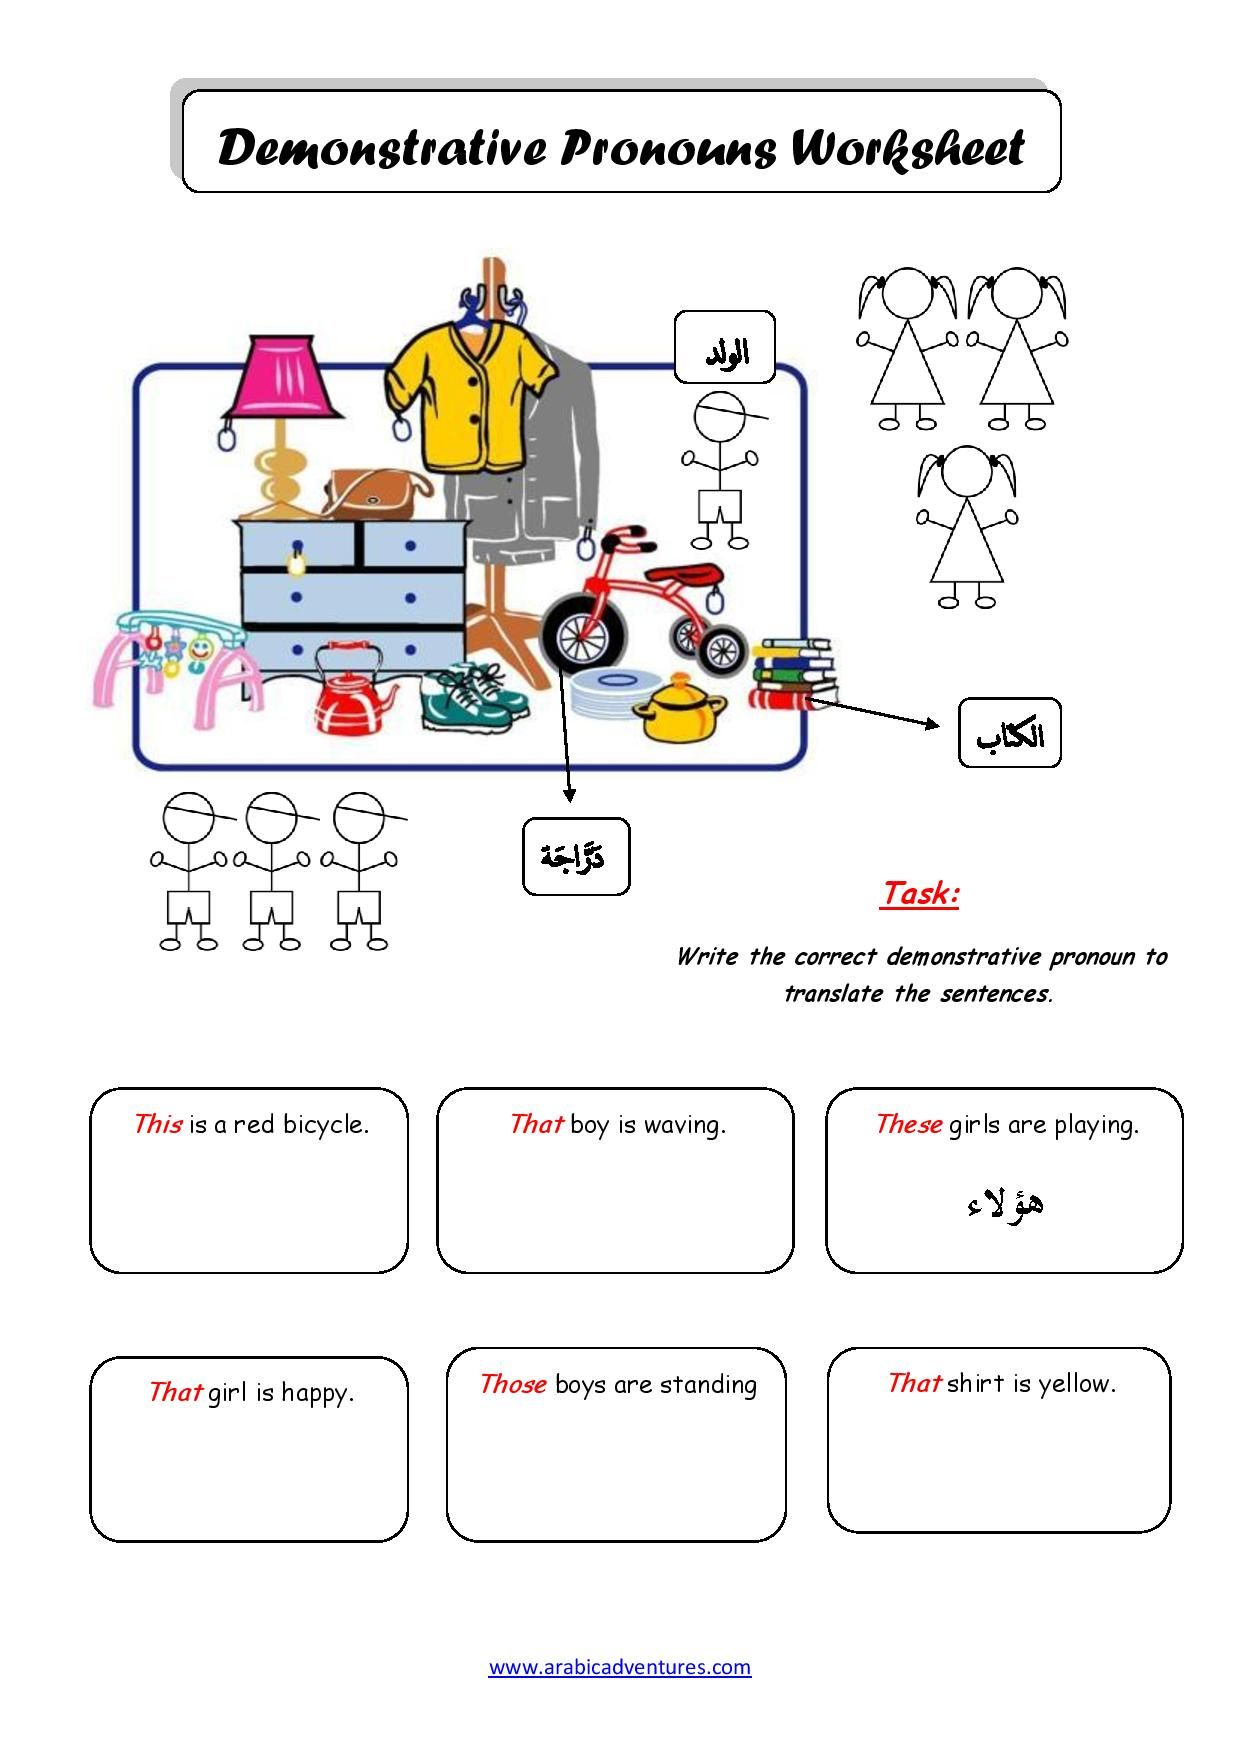 Demonstrative pronouns - use them correctly in English 2